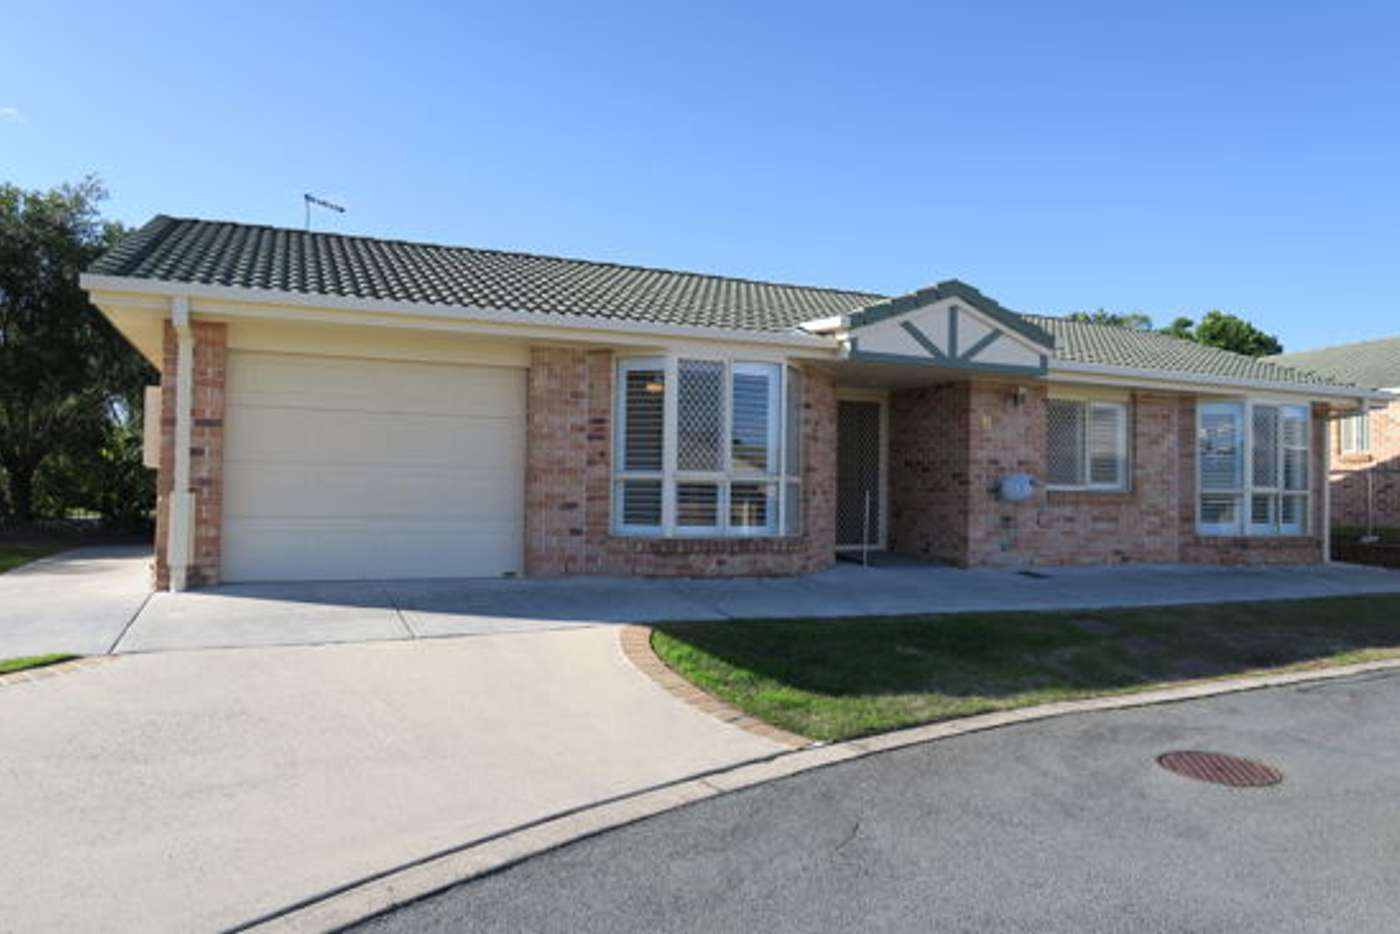 Main view of Homely unit listing, 11/67 Cascade Street, Raceview QLD 4305